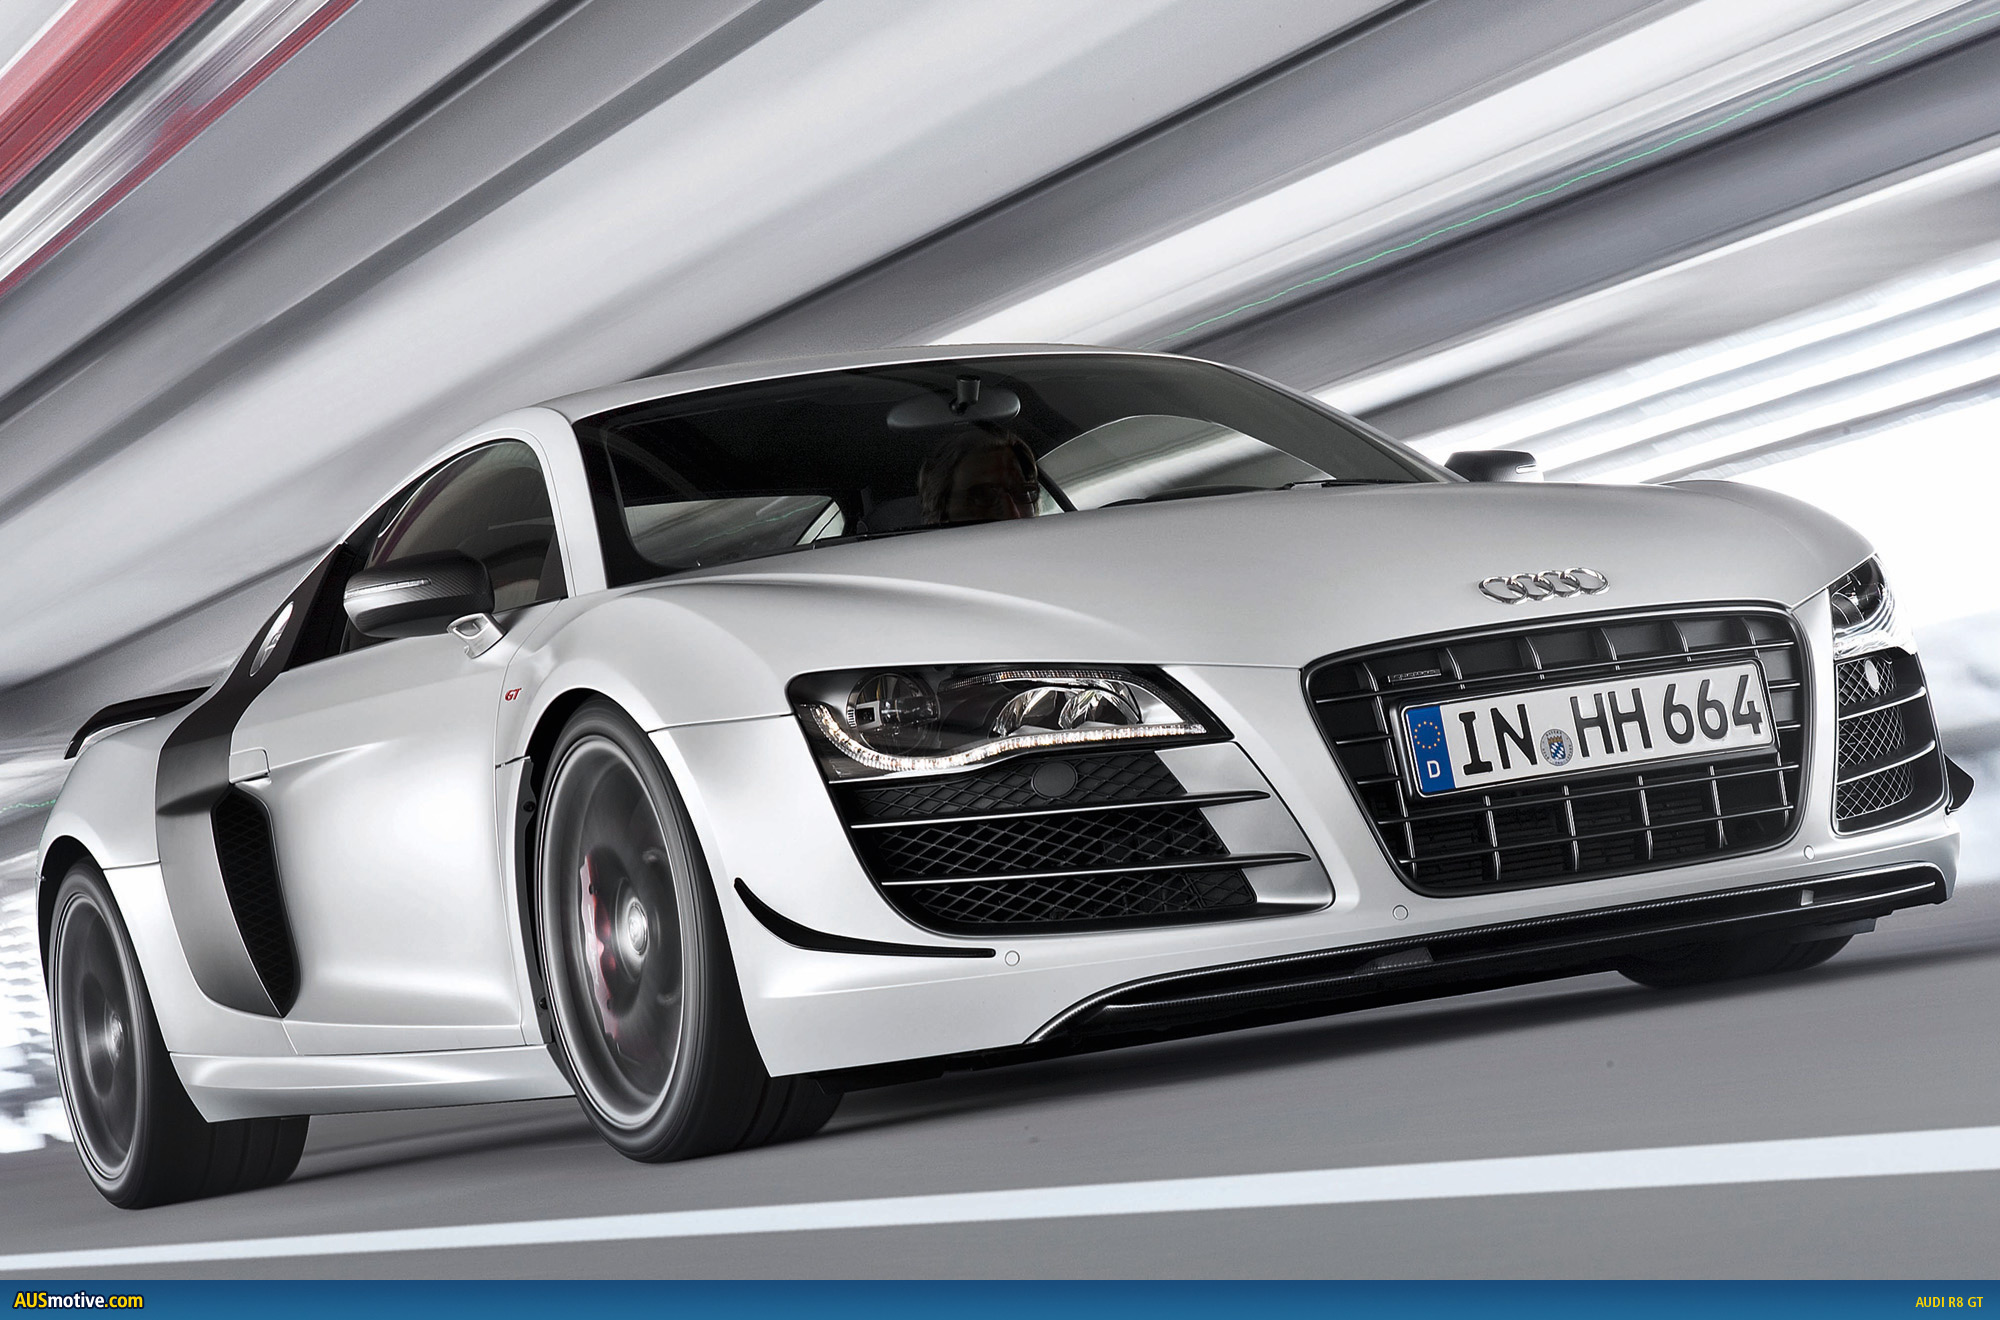 AUSmotive.com » 2010 Audi R8 GT officially announced